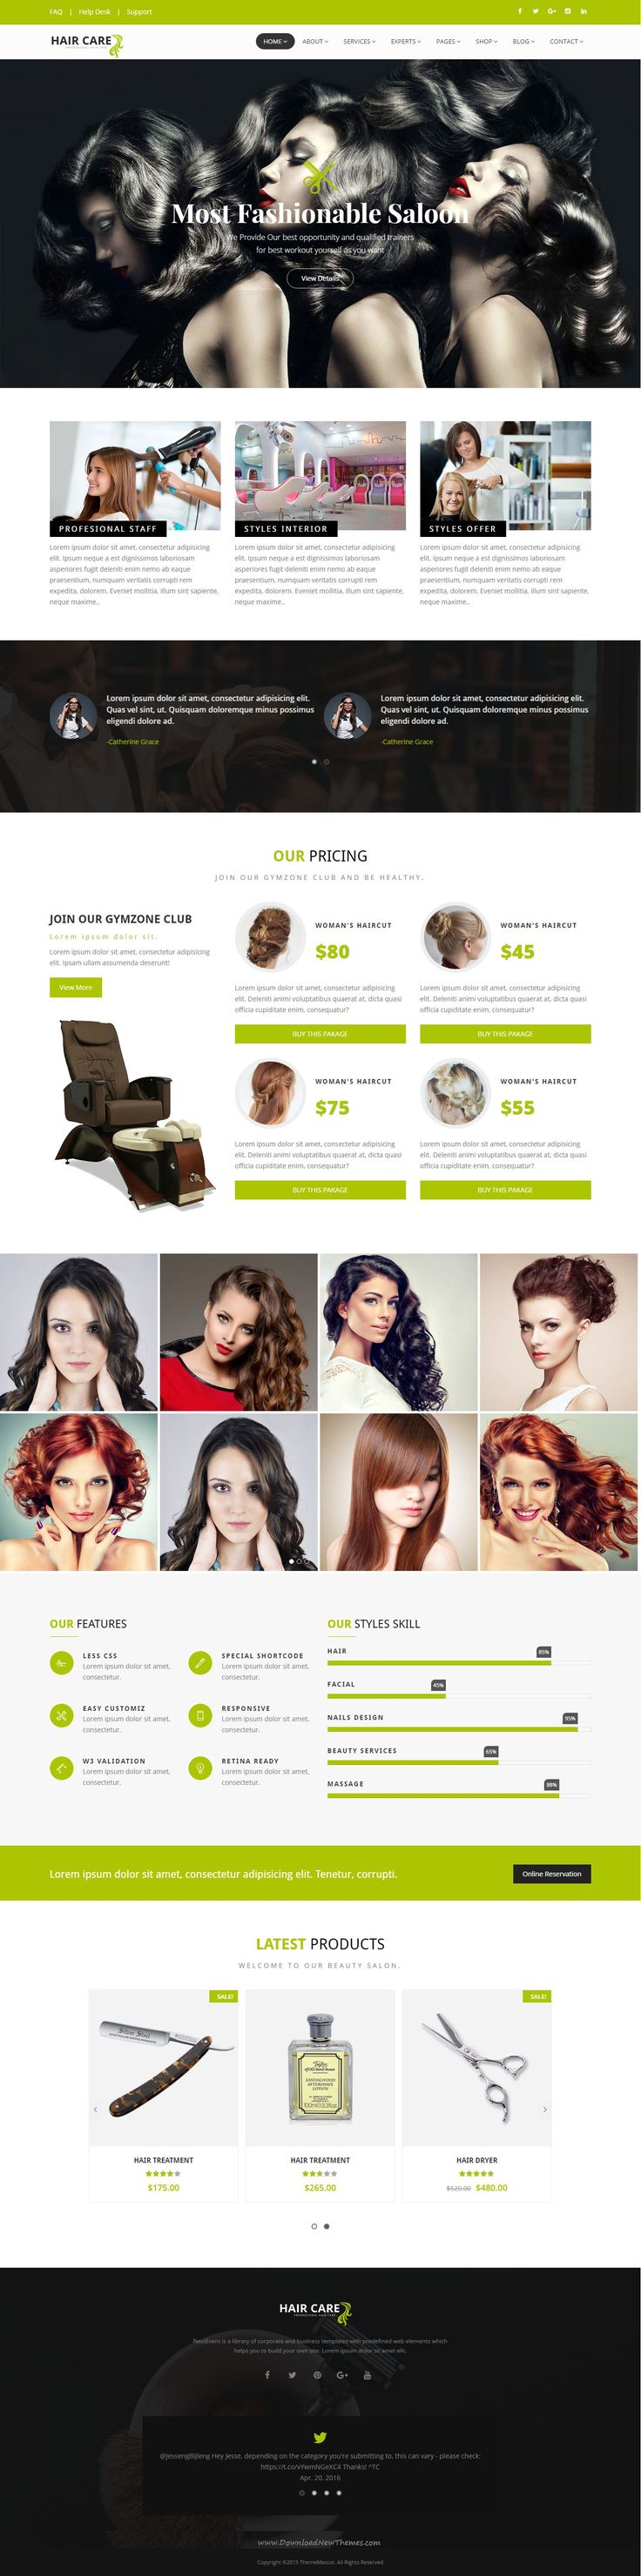 HairCare Stunning Bootstrap HTML5 theme is suitable for spa, beauty, care, girly, hair, health, beauty parlous, massage, skincare, saloon, make up, #physiotherapy, salon, #wellness, yoga #website.